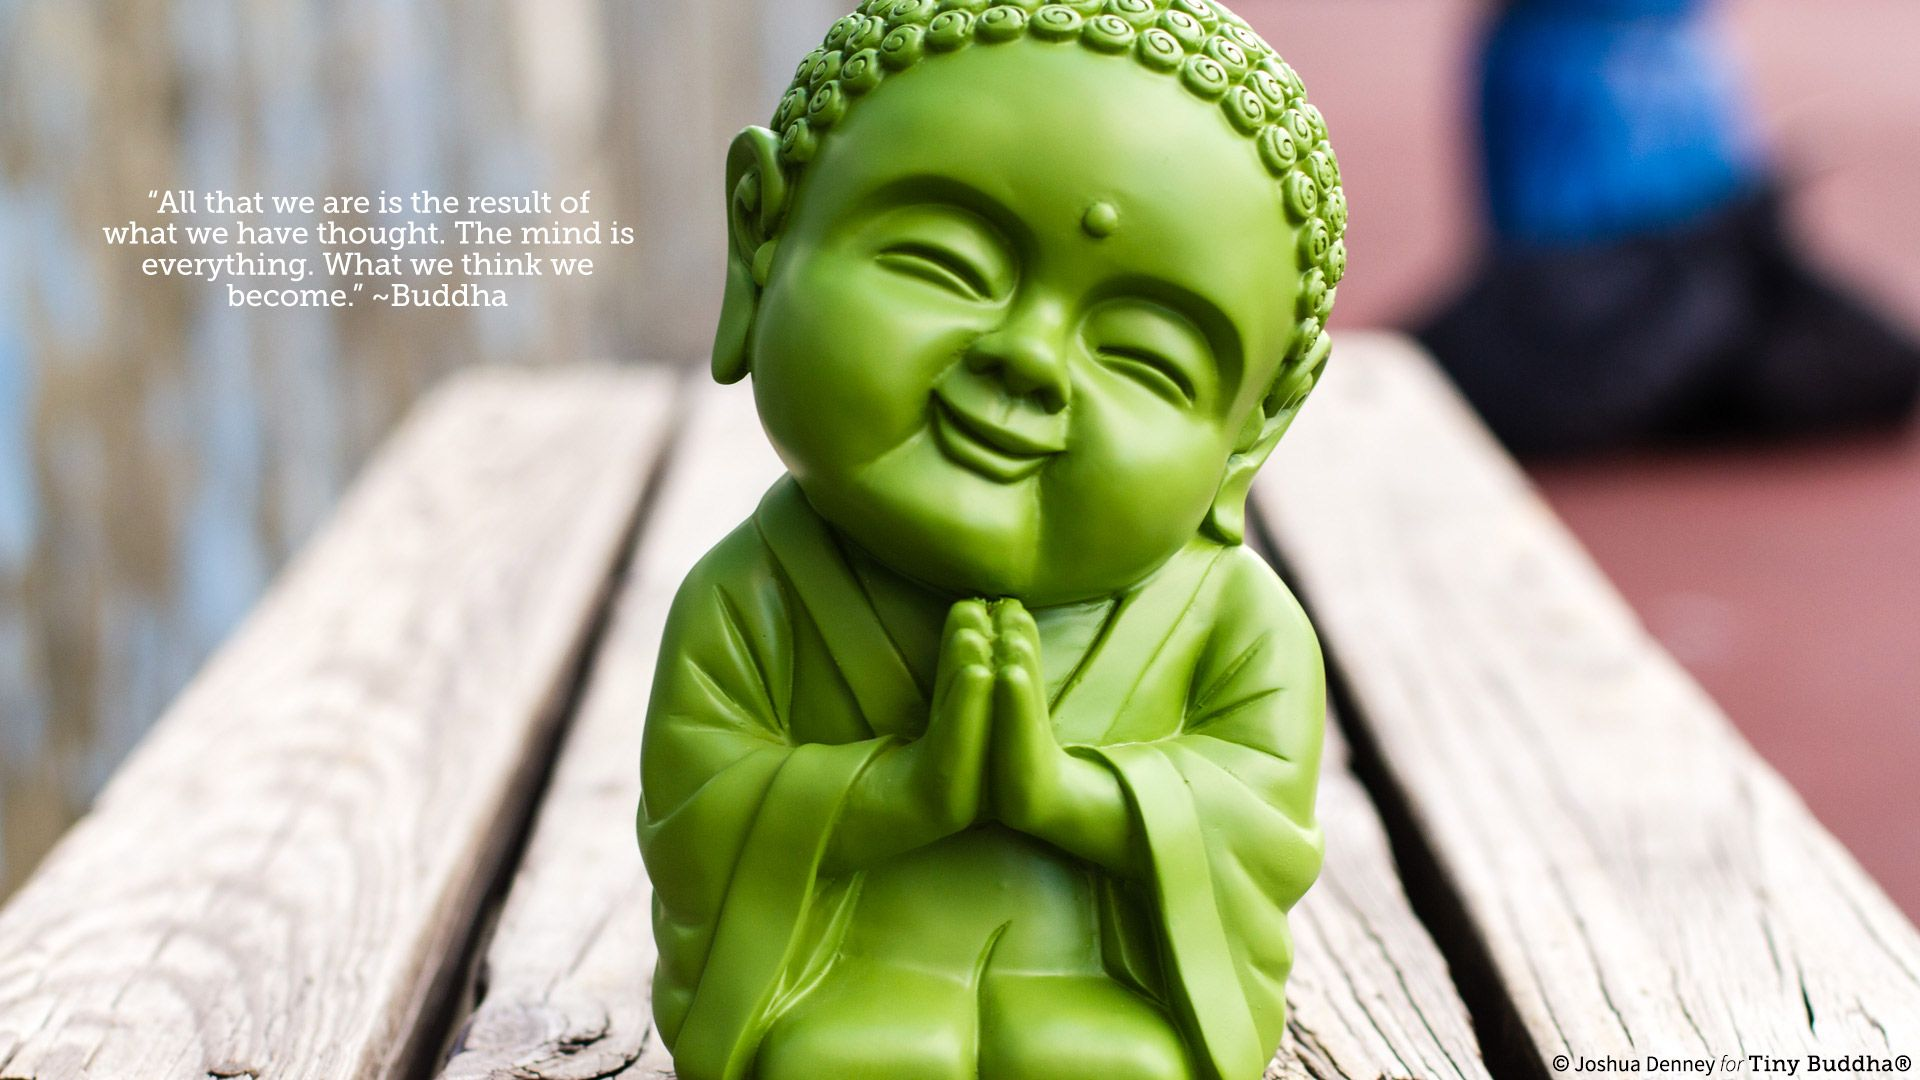 Cute Buddha Wallpapers Top Free Cute Buddha Backgrounds Wallpaperaccess